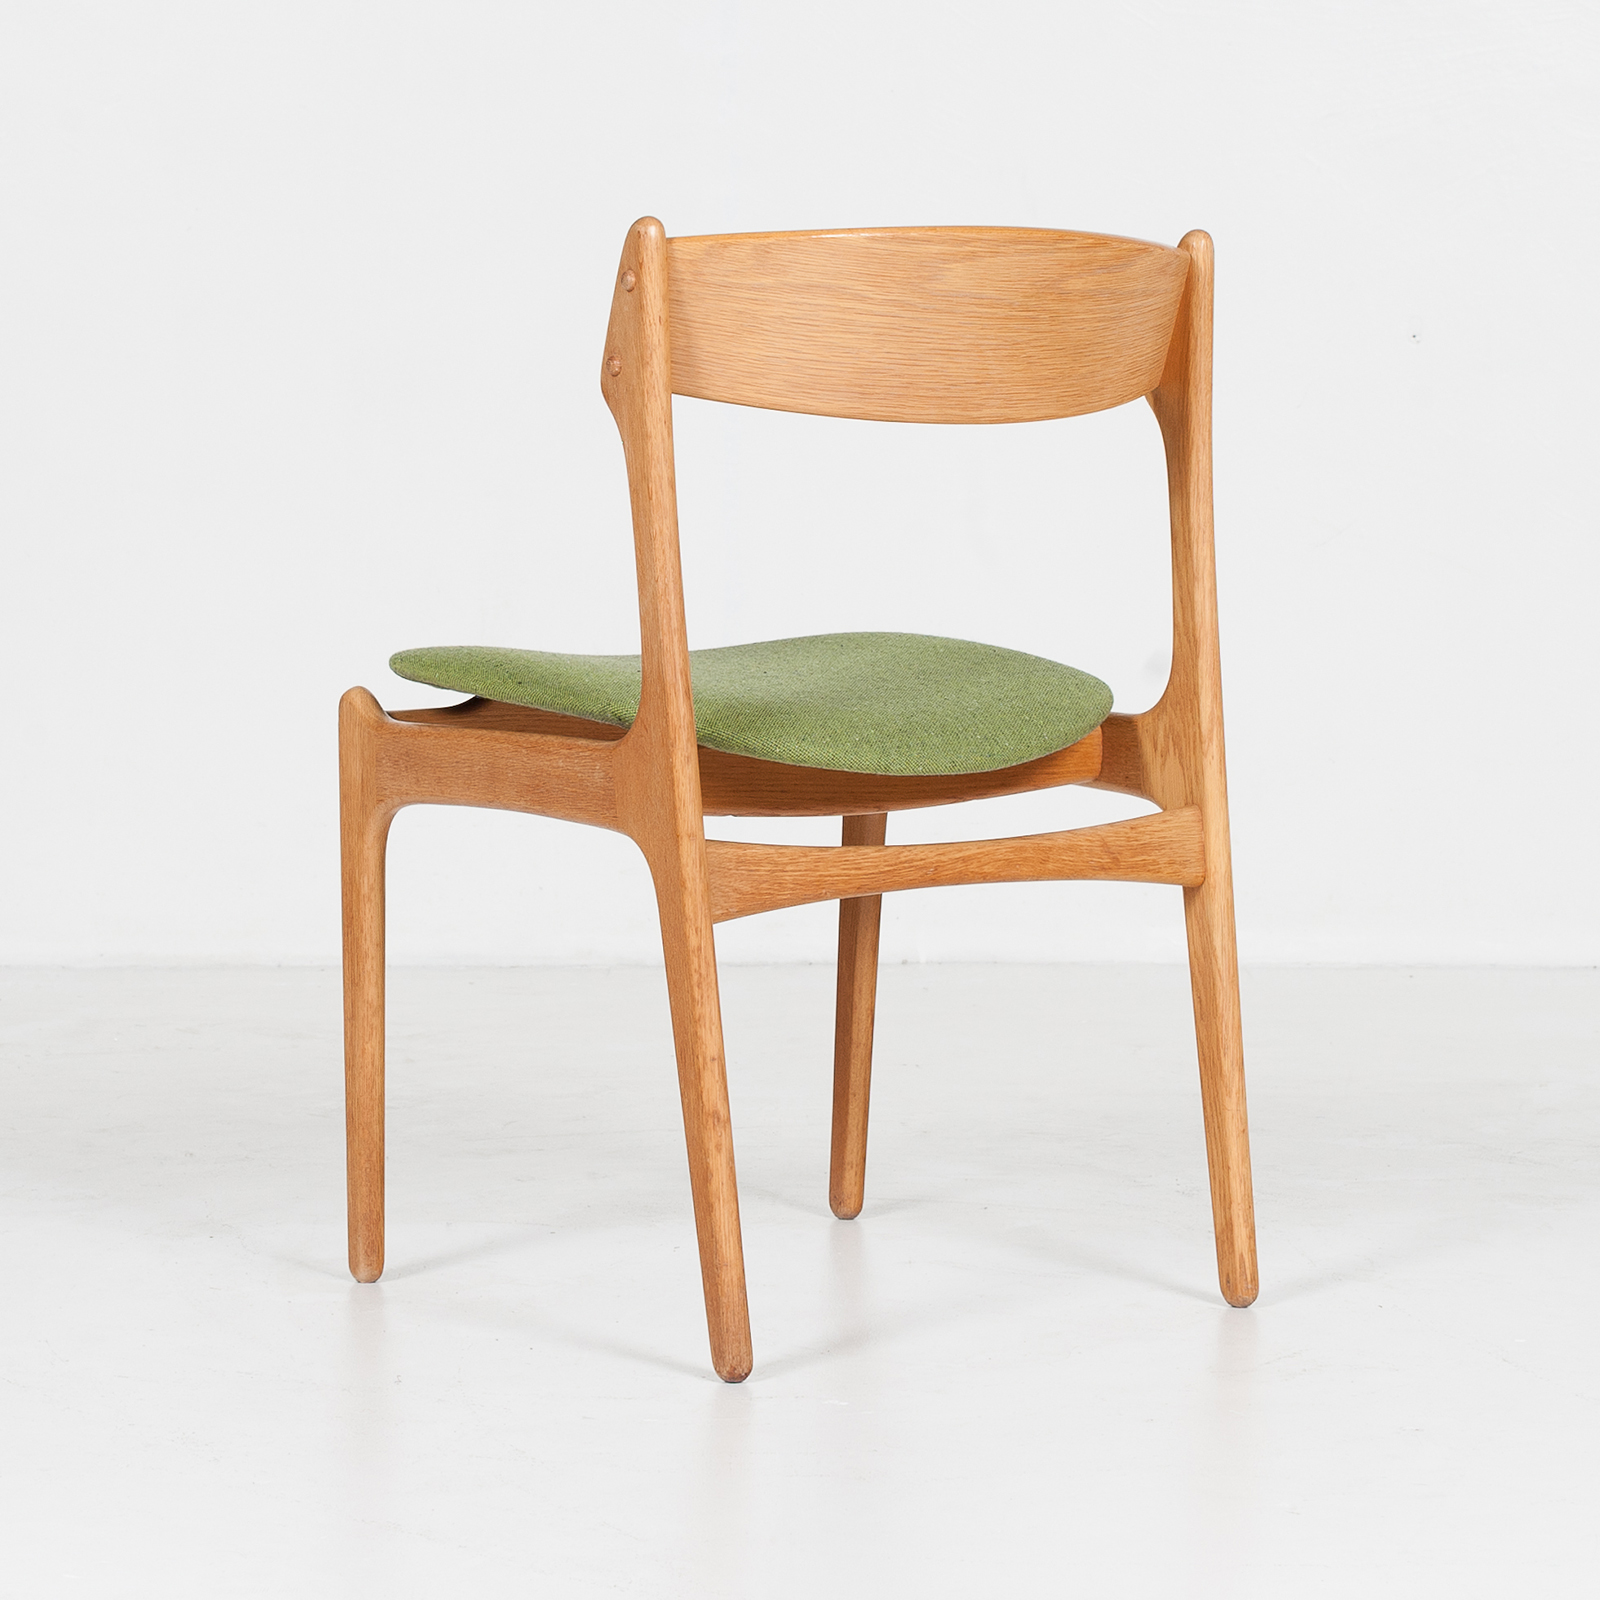 Set Of Four Dining Chairs By Erik Buch For O.d. Mobler In Oak And Green Upholstery, 1960s, Denmark85